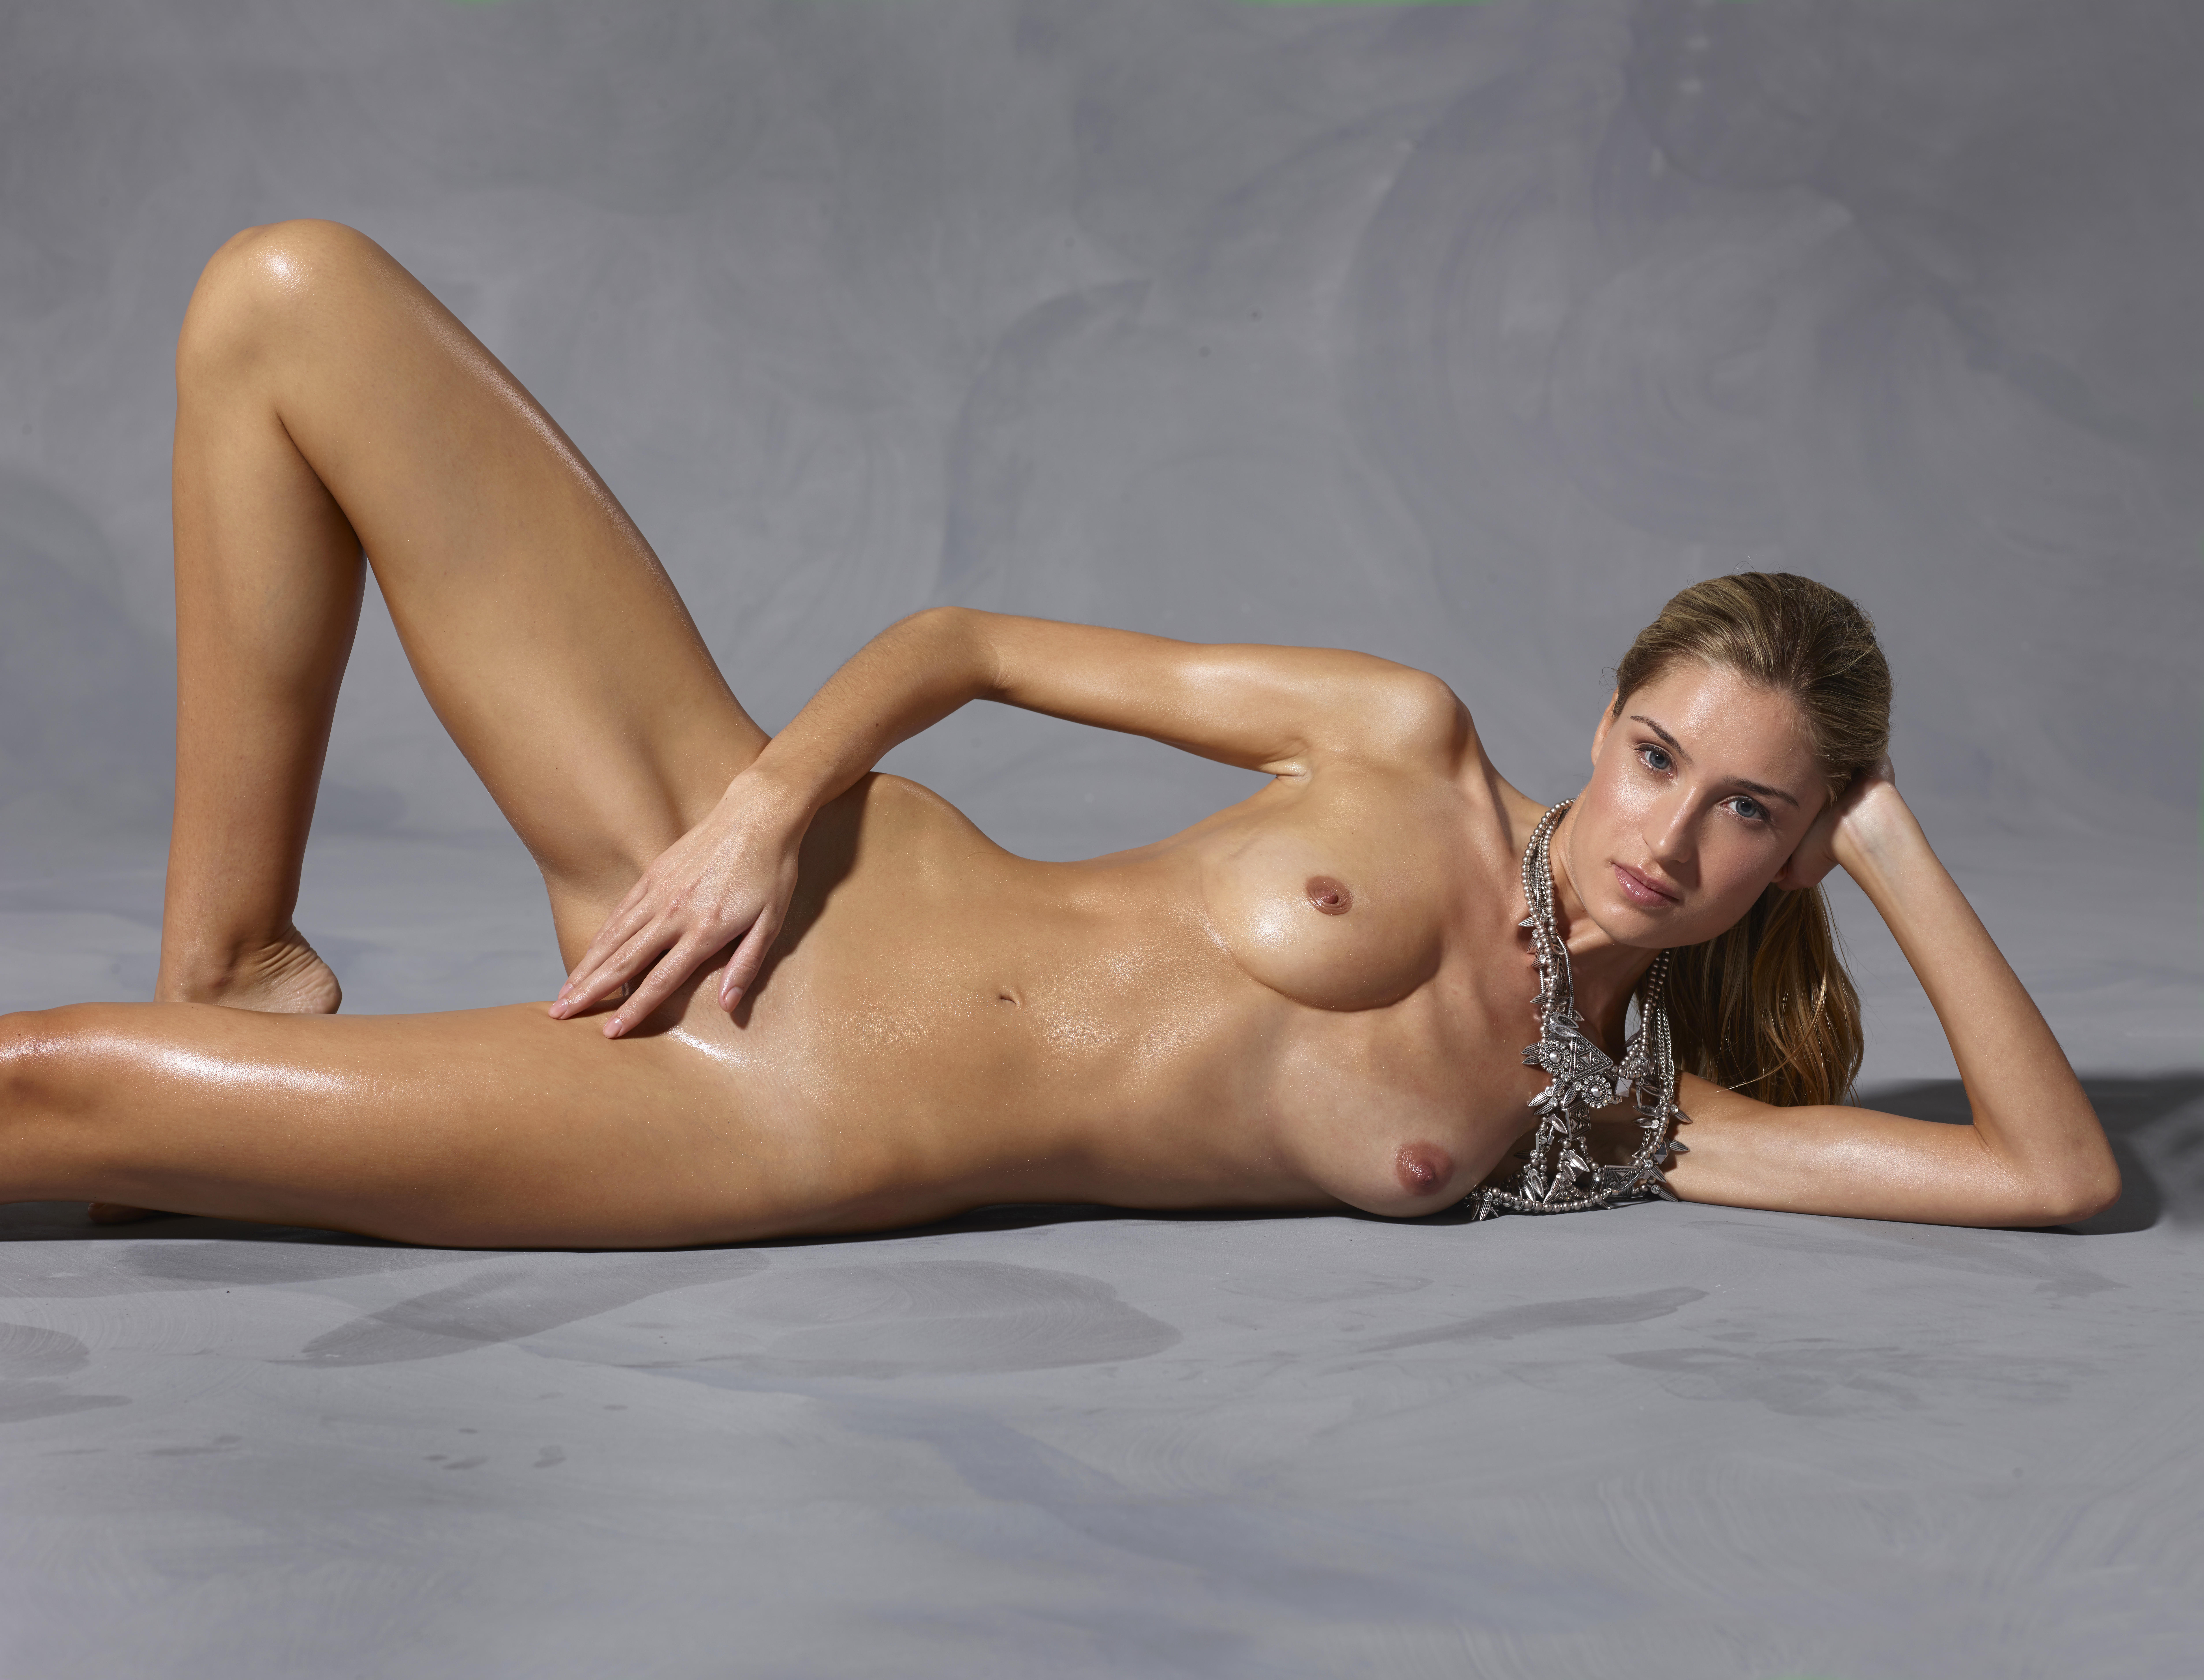 Group nude sex with one girl